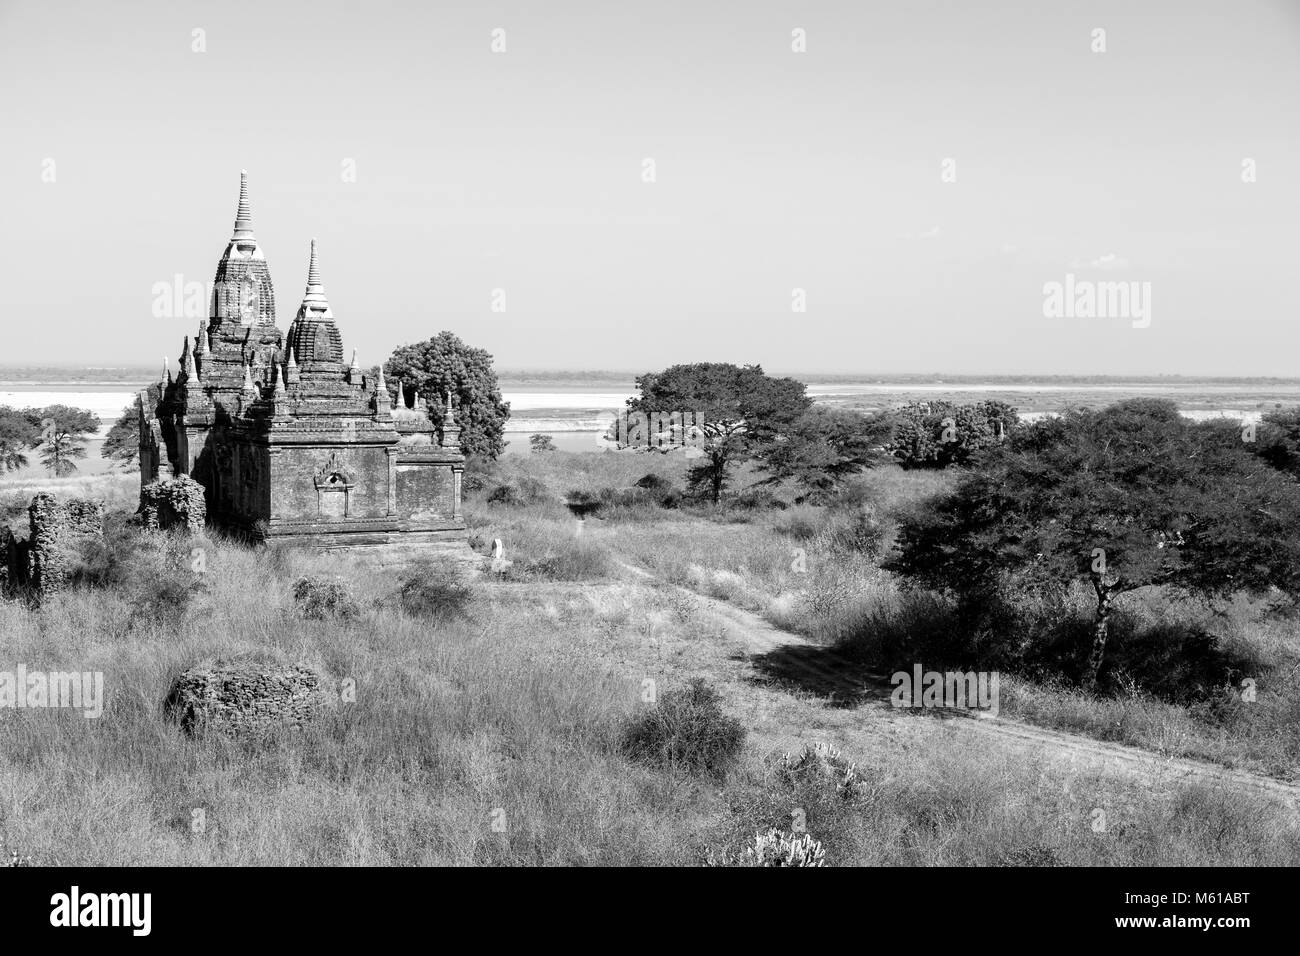 Irrawaddy River with Pagodas in Bagan, Myanmar - Stock Image